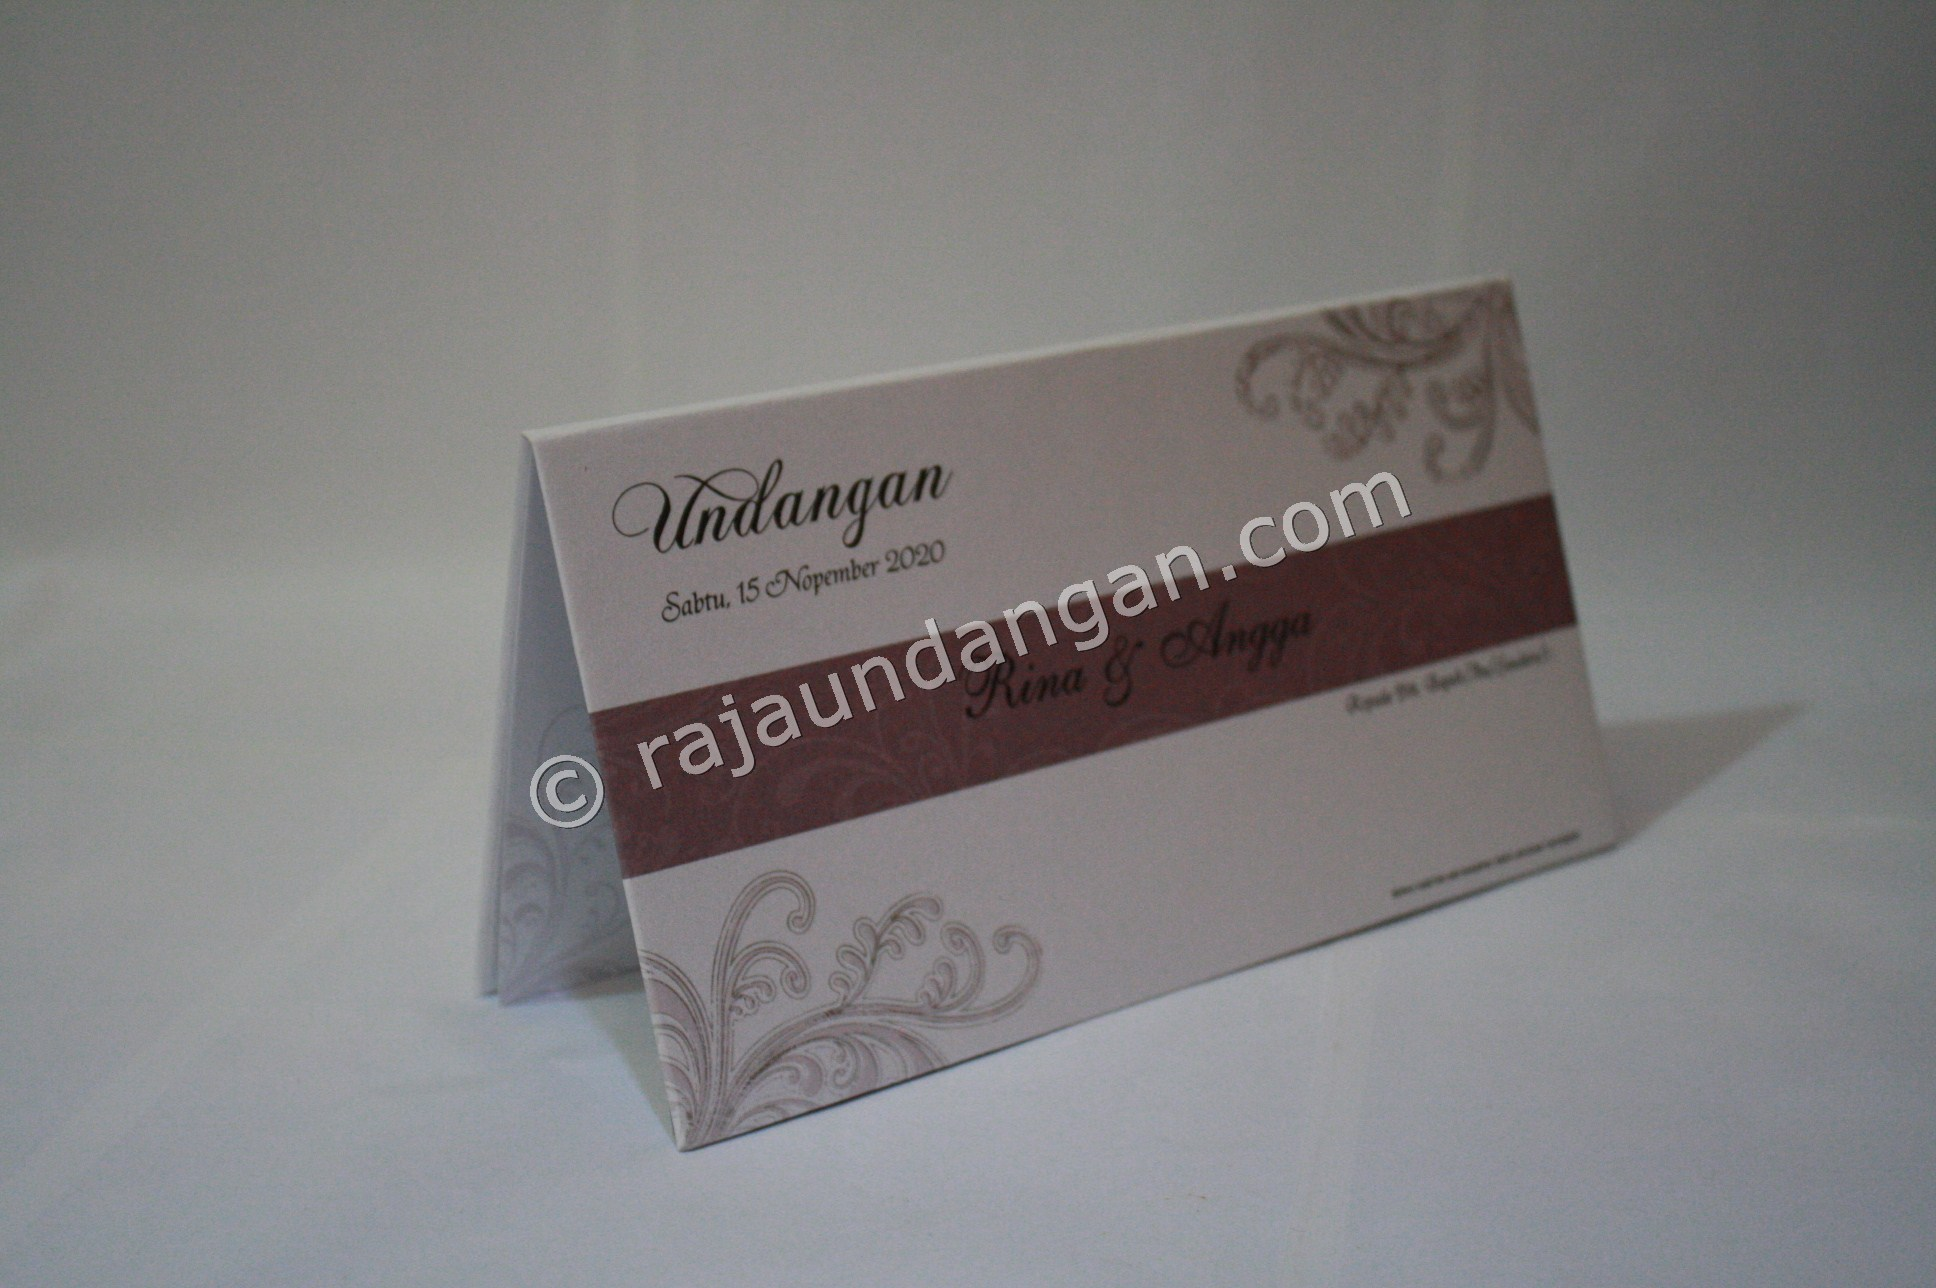 Undangan Pernikahan Hardcover Herman dan Rani 1 - Membuat Wedding Invitations Unik dan Simple di Sawahan